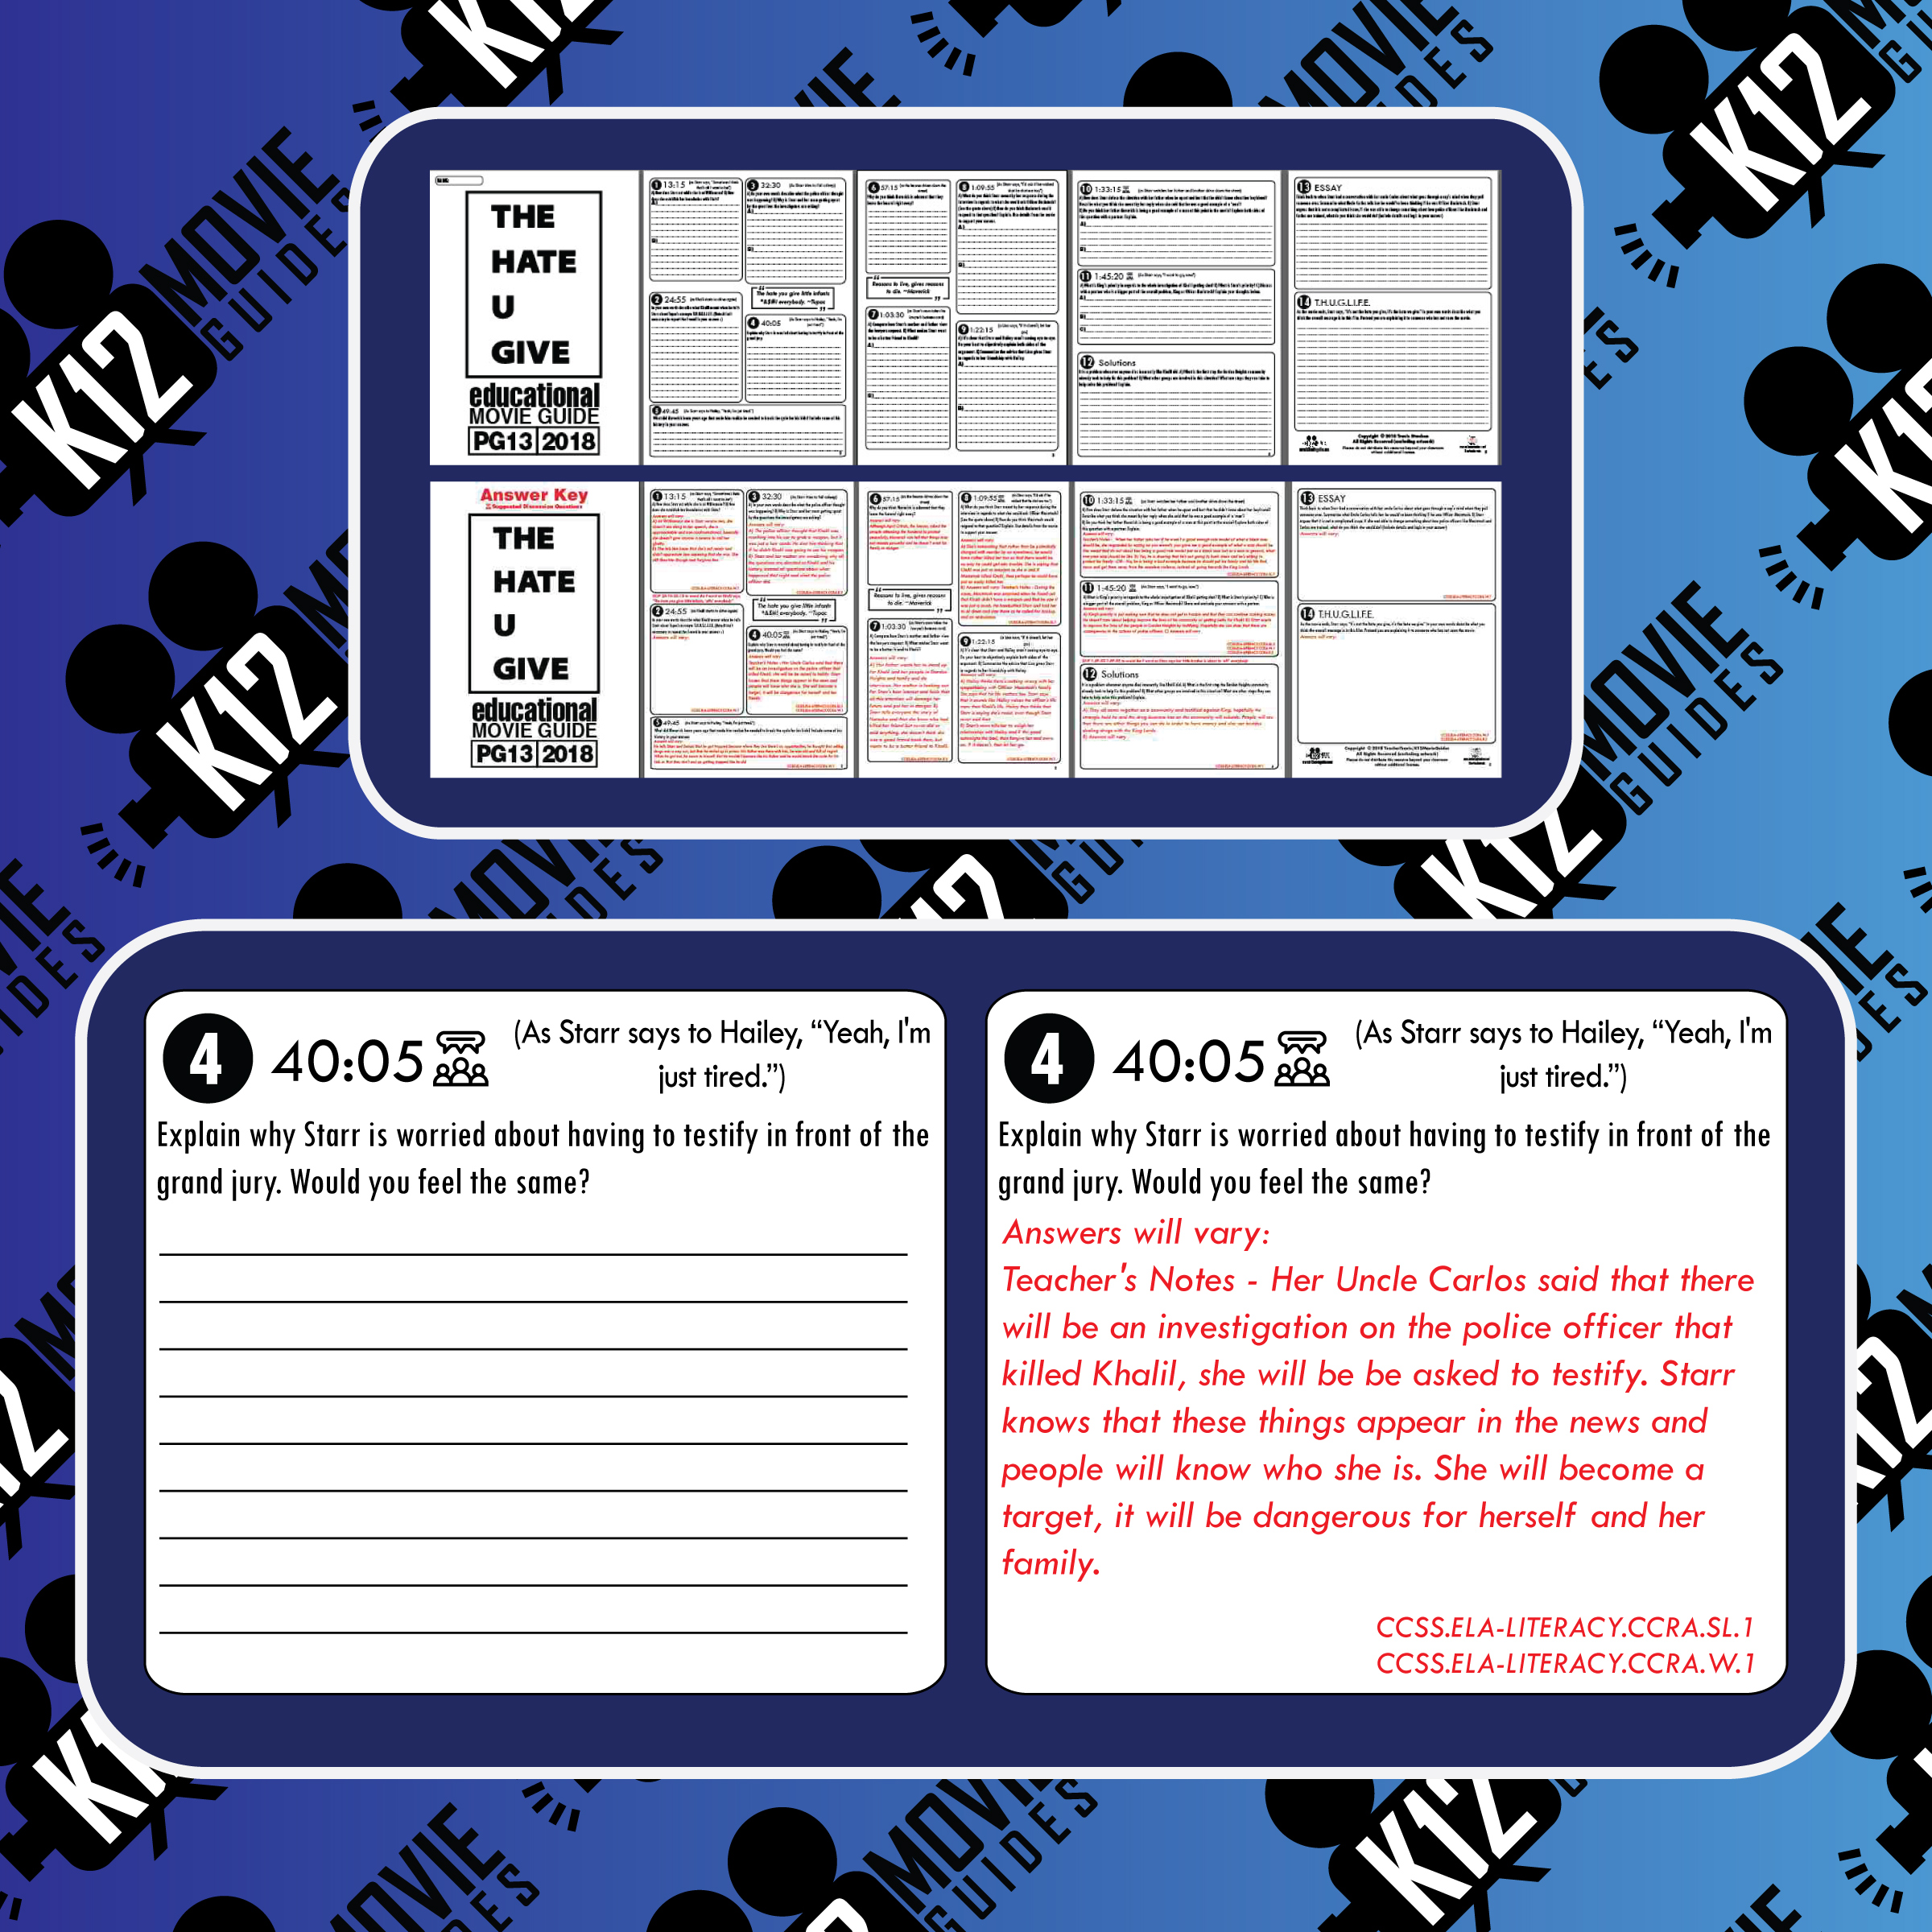 The Hate U Give Movie Guide   Worksheet (PG13 - 2018) Free Questions